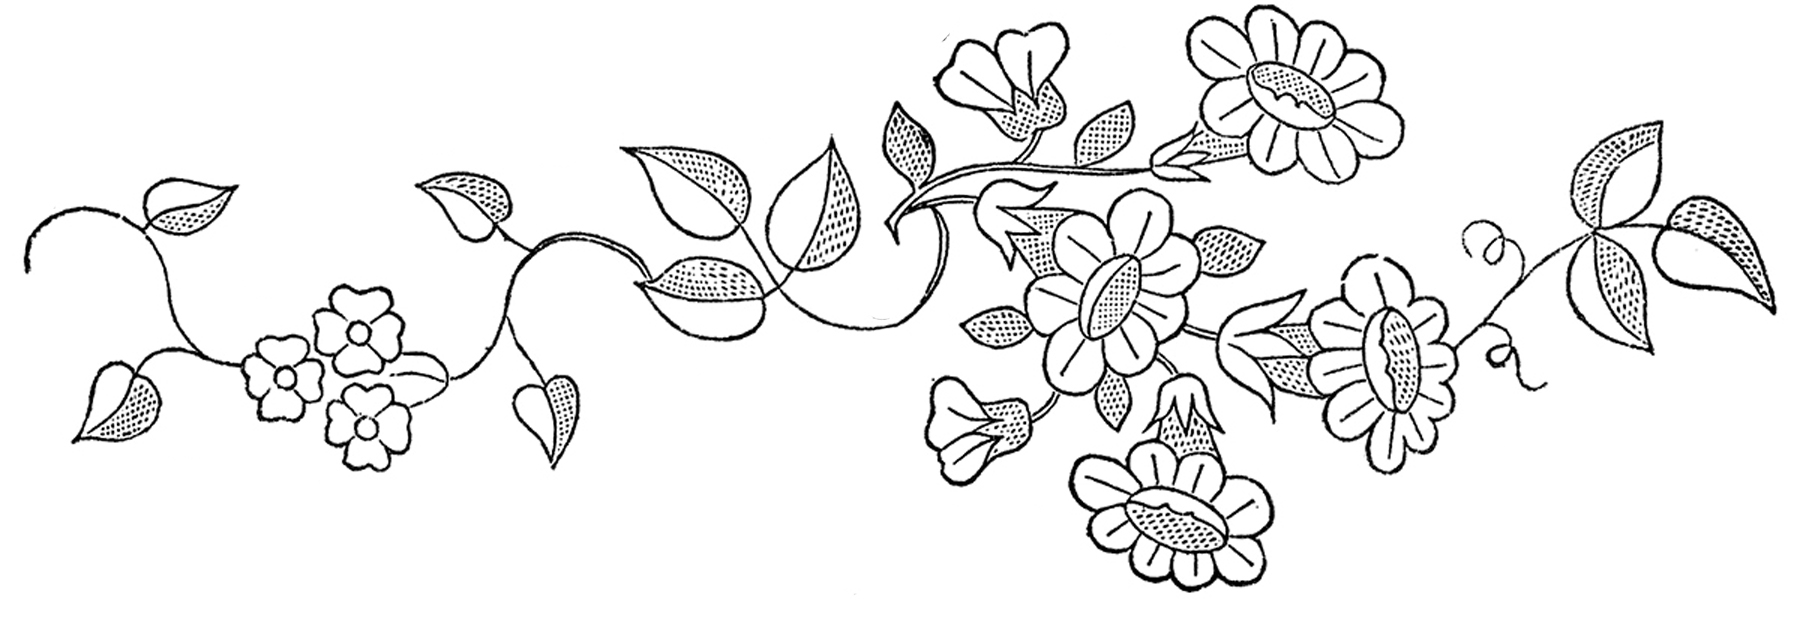 Floral embroidery patterns pretty the graphics fairy floral embroidery patterns thecheapjerseys Choice Image